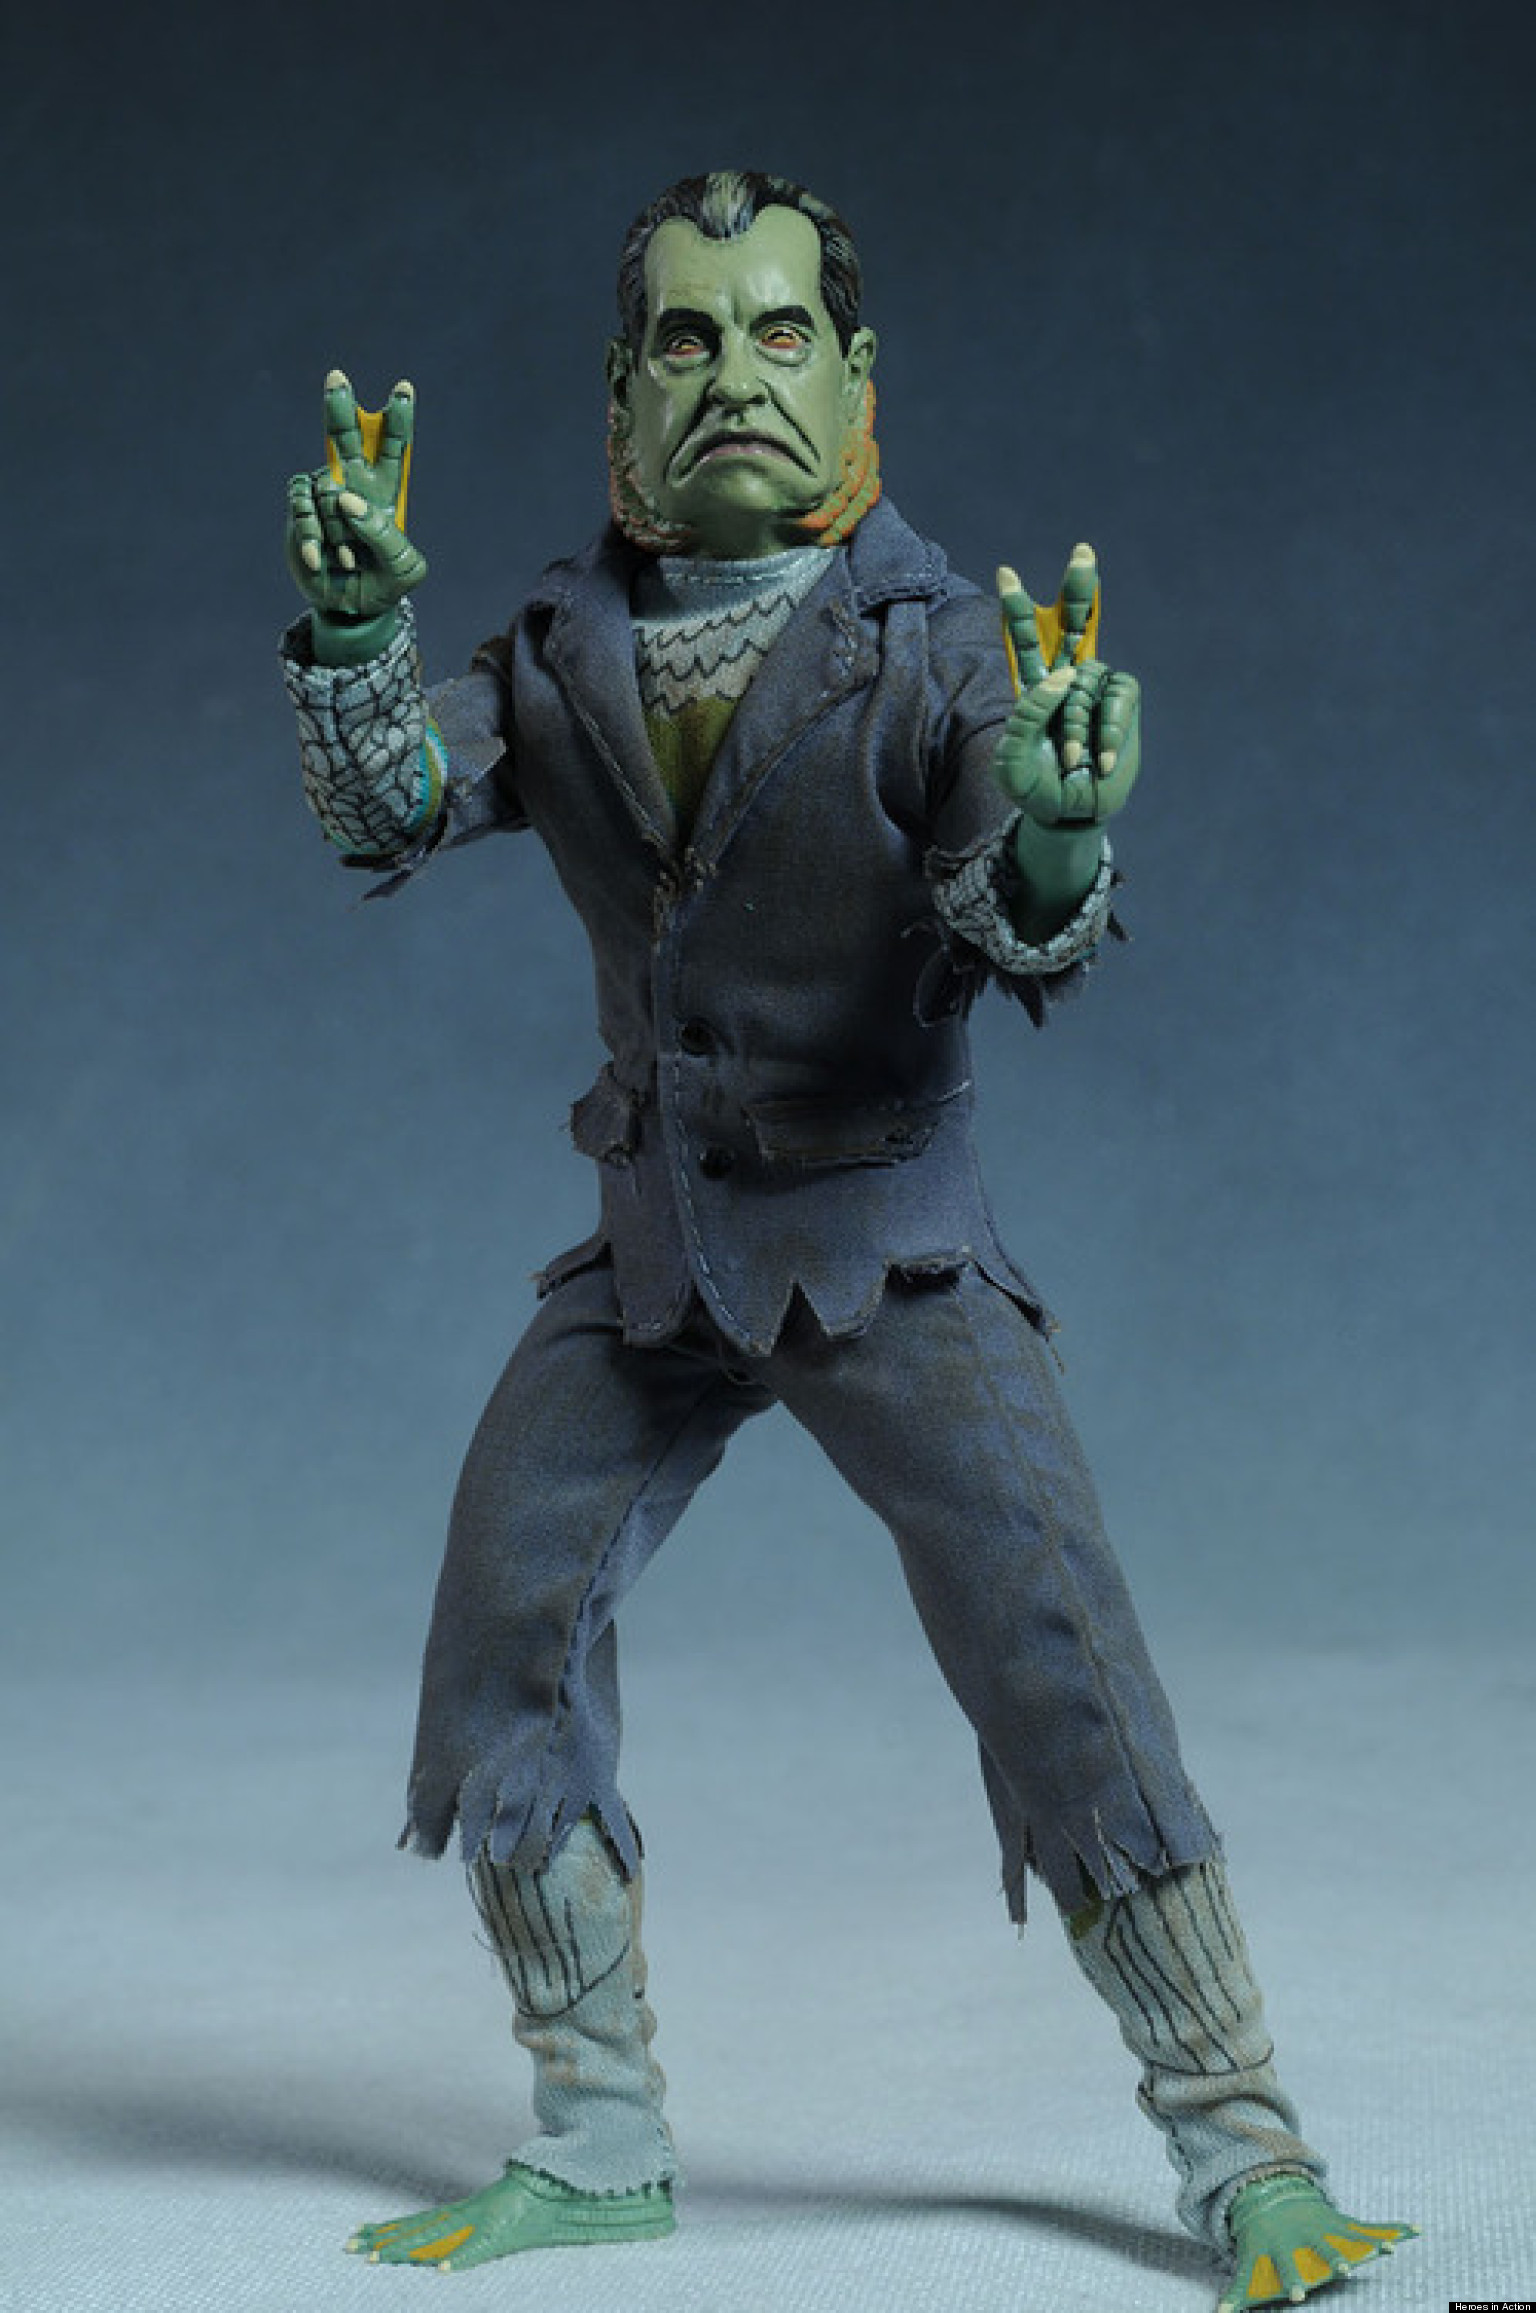 Presidential Monster Action Figures Are A Real And Amazing